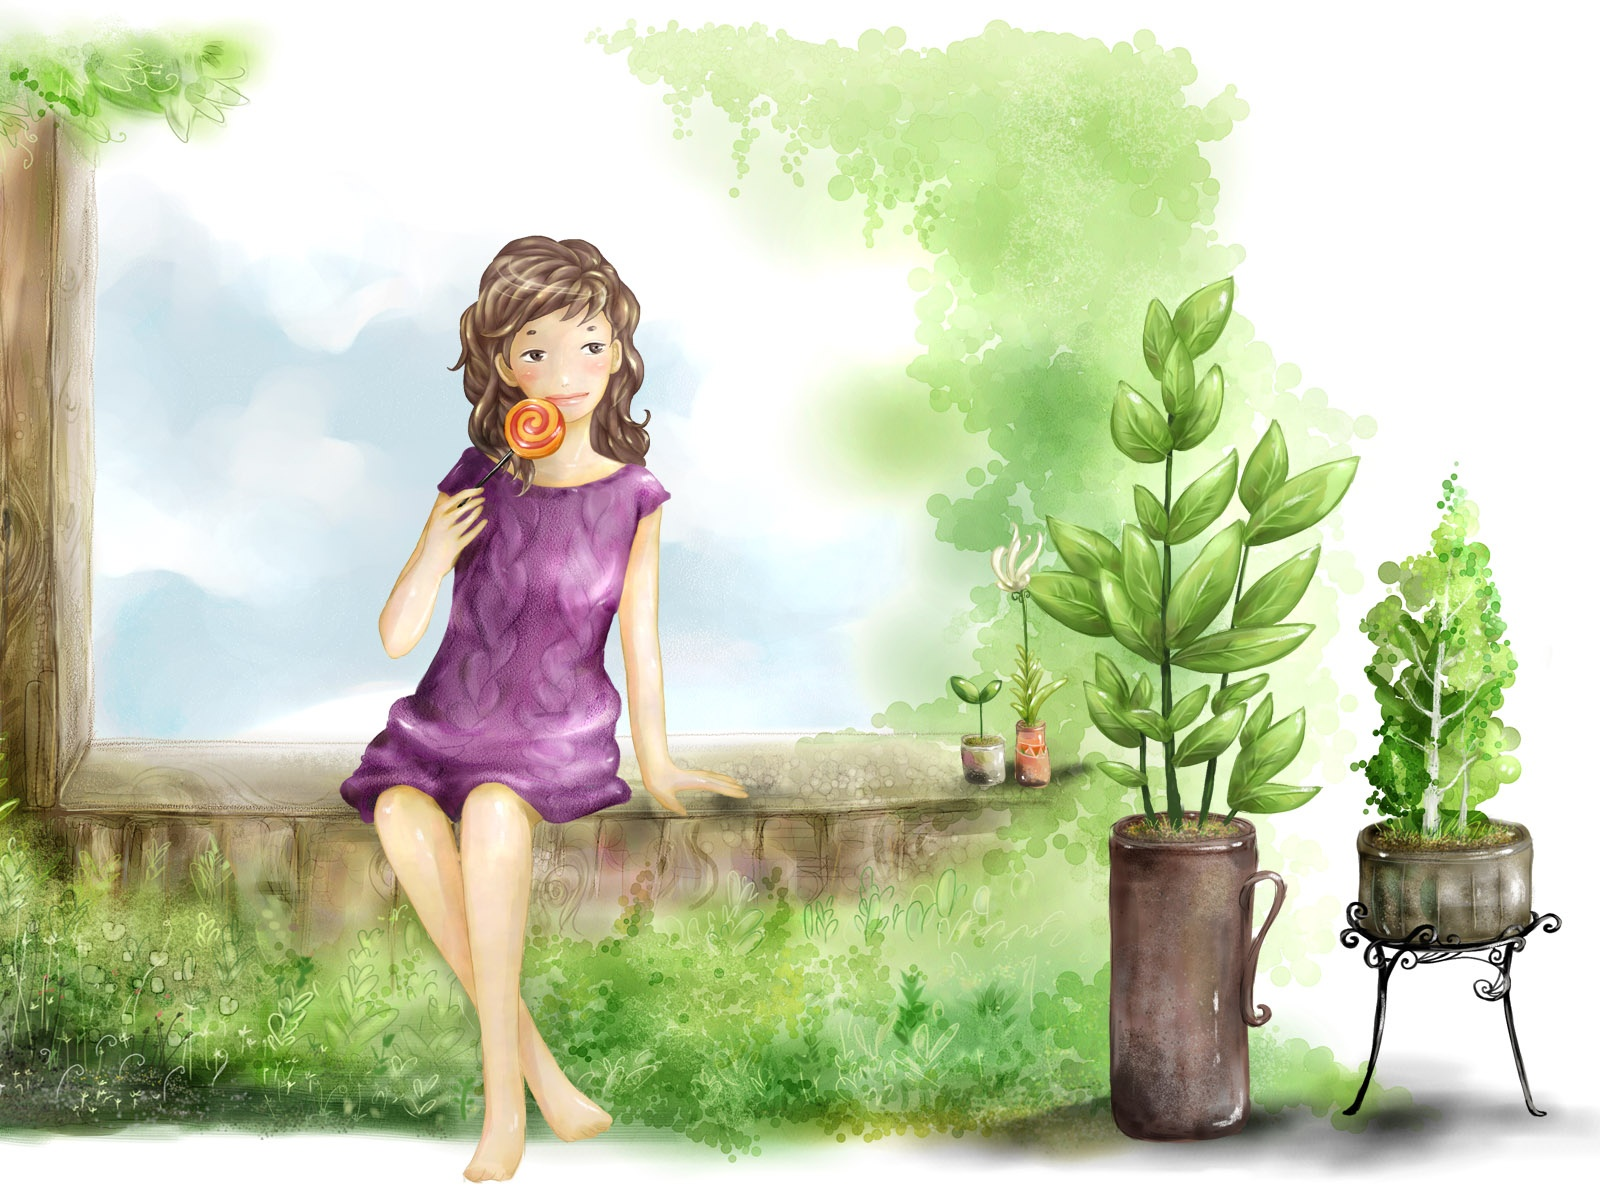 click to free download the wallpaper--Nature Landscape Image, a Lollipop Girl Among Green Plants, Comfortable Life